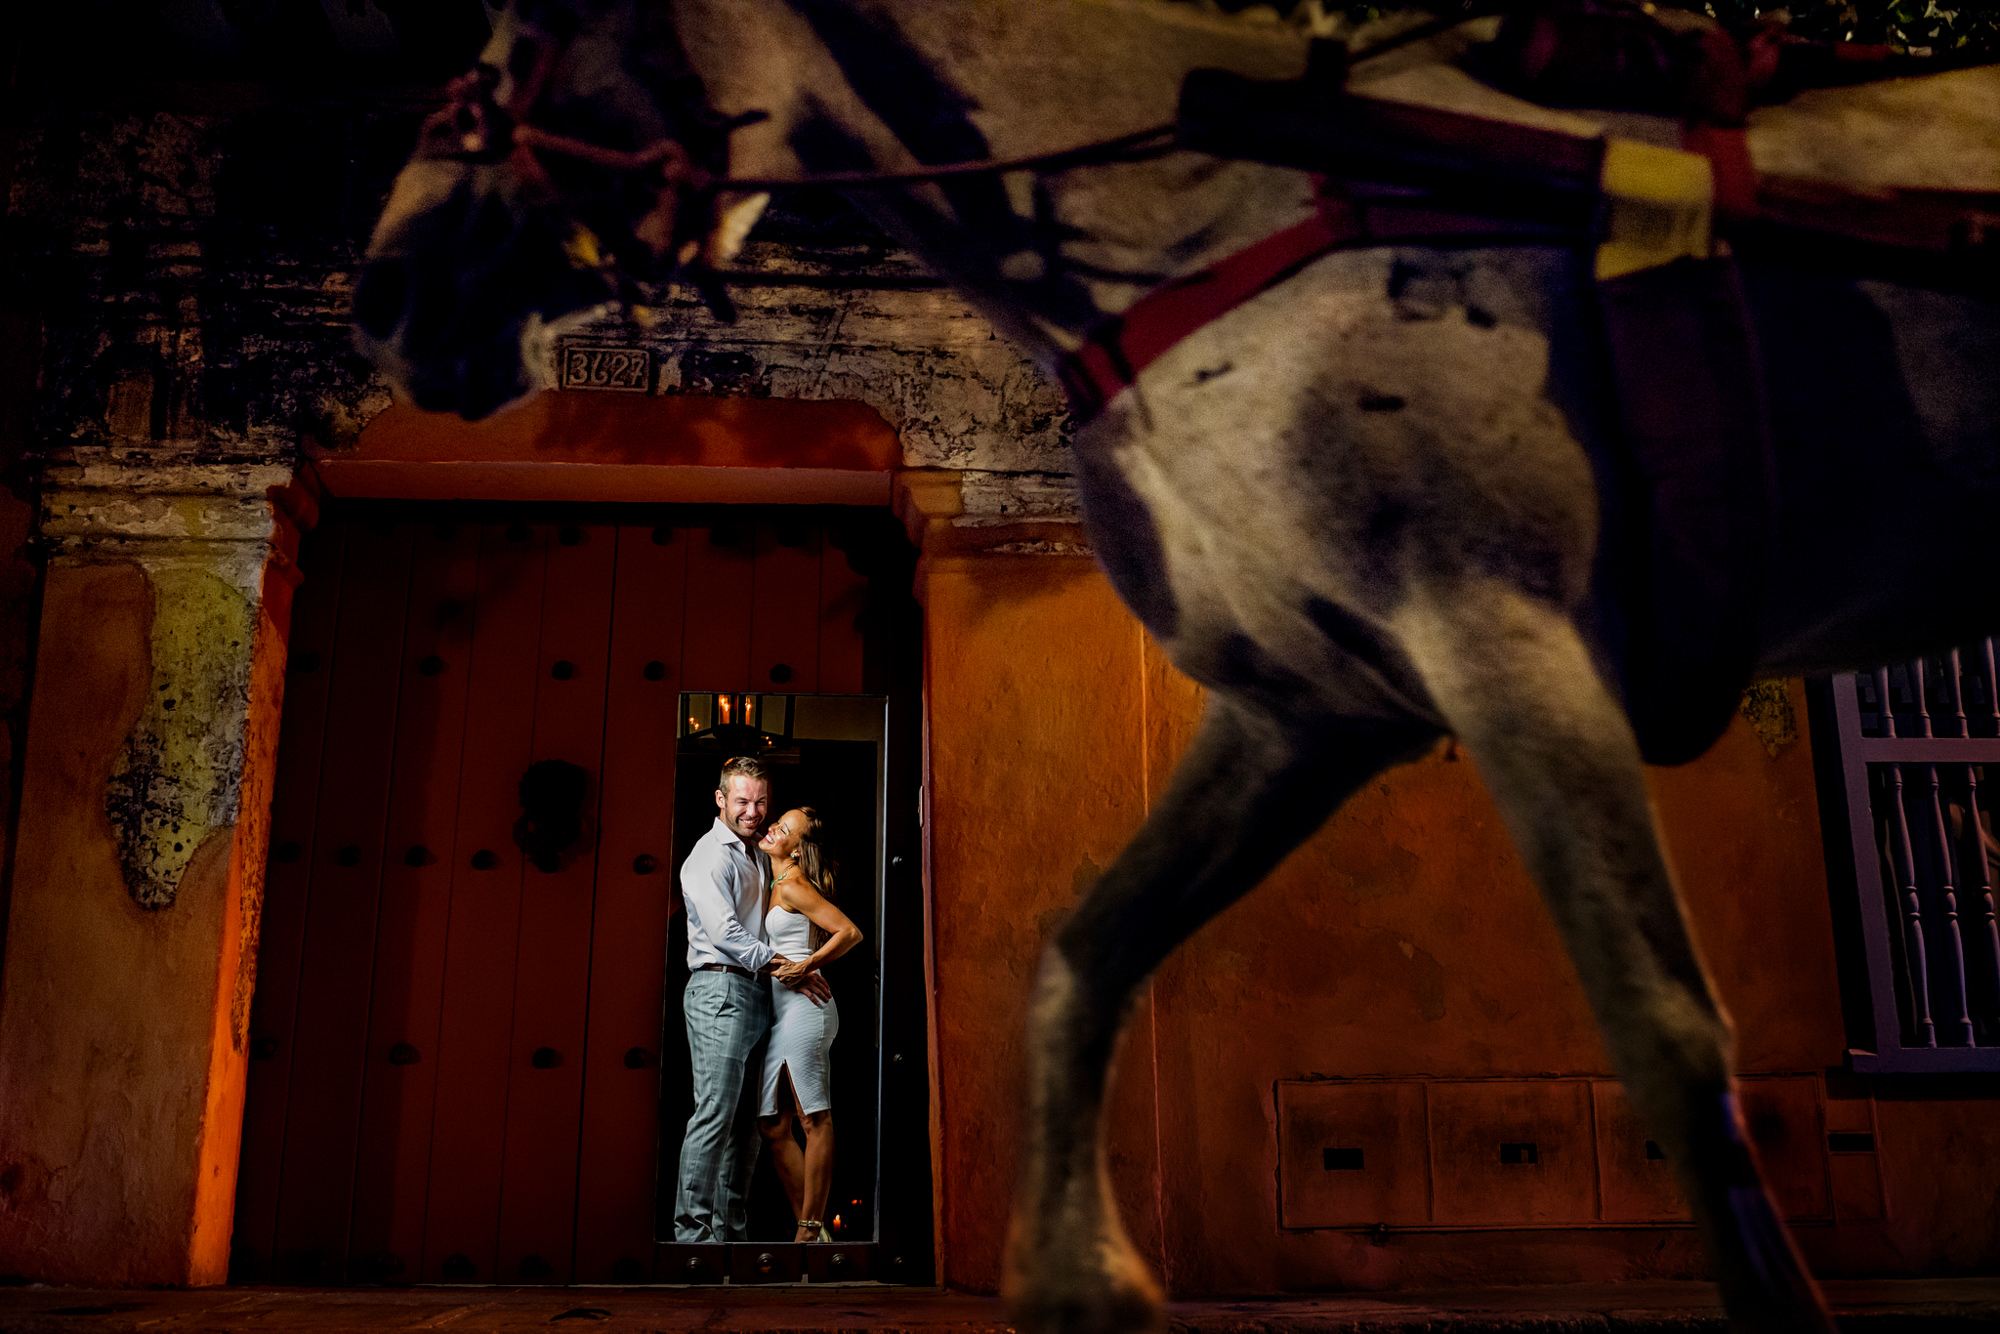 Horse passing by couple in stucco doorway